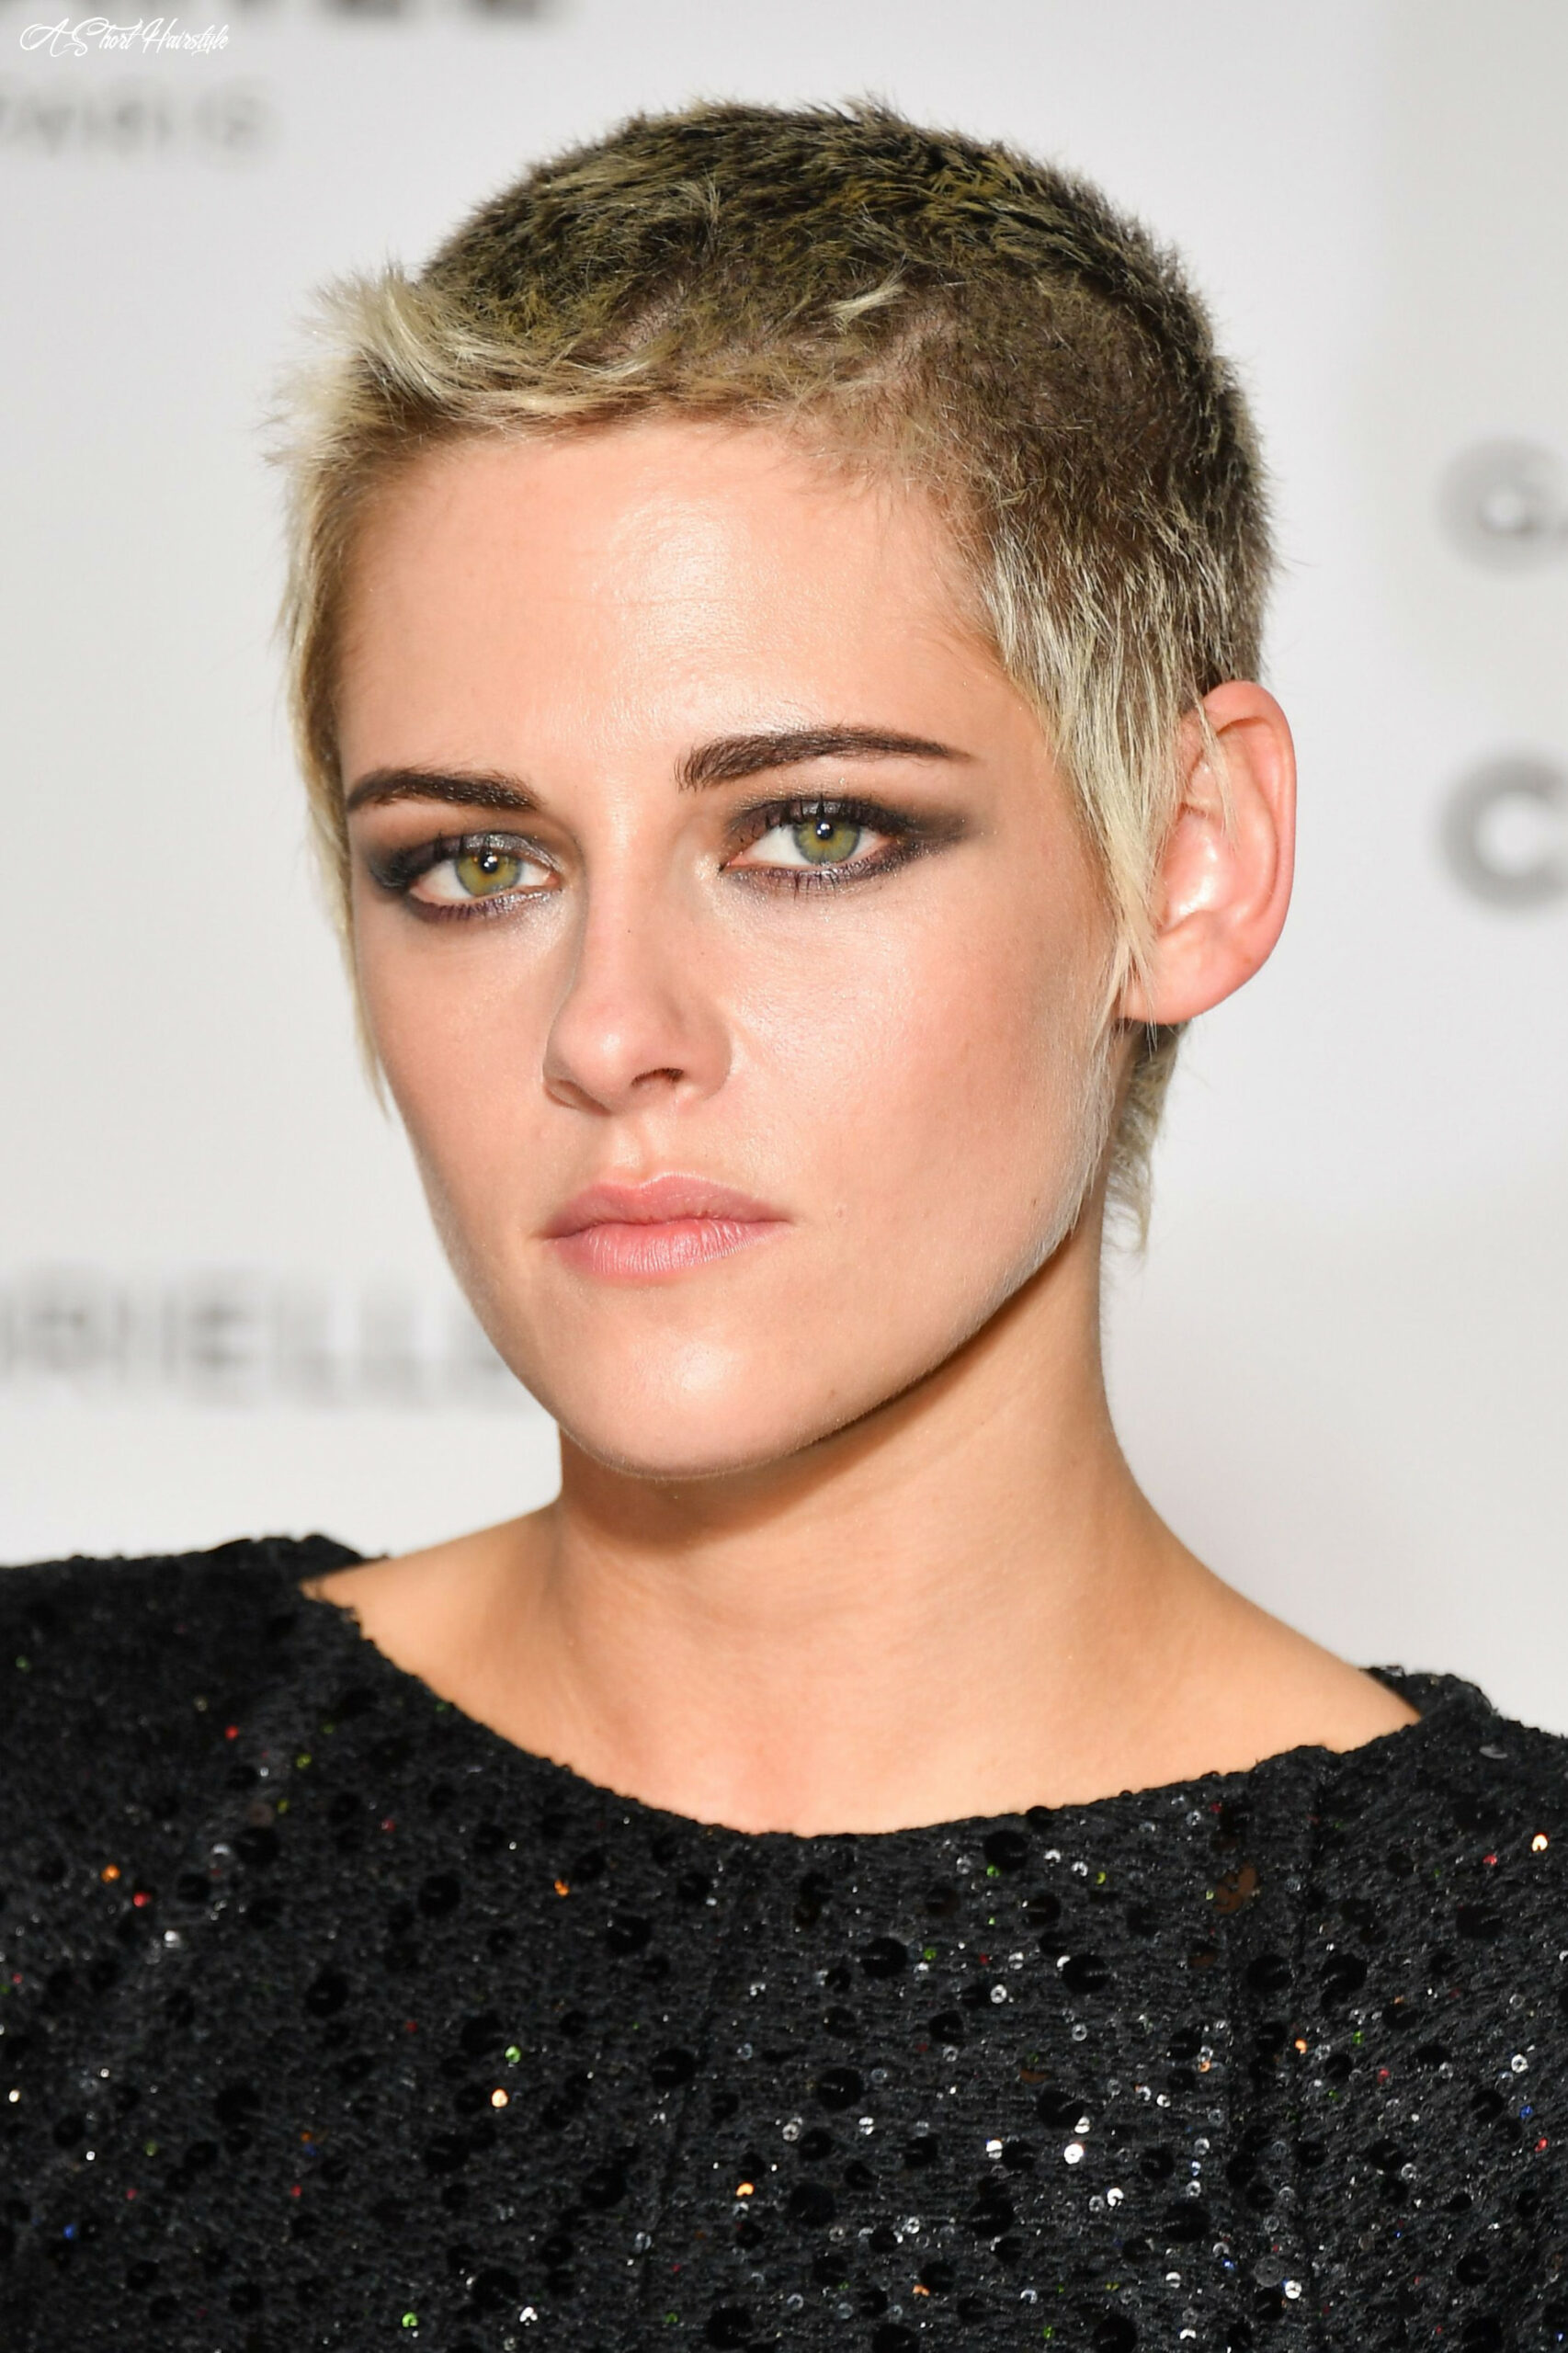 9 Cute Short Hairstyles for Women - How to Style Short Haircuts